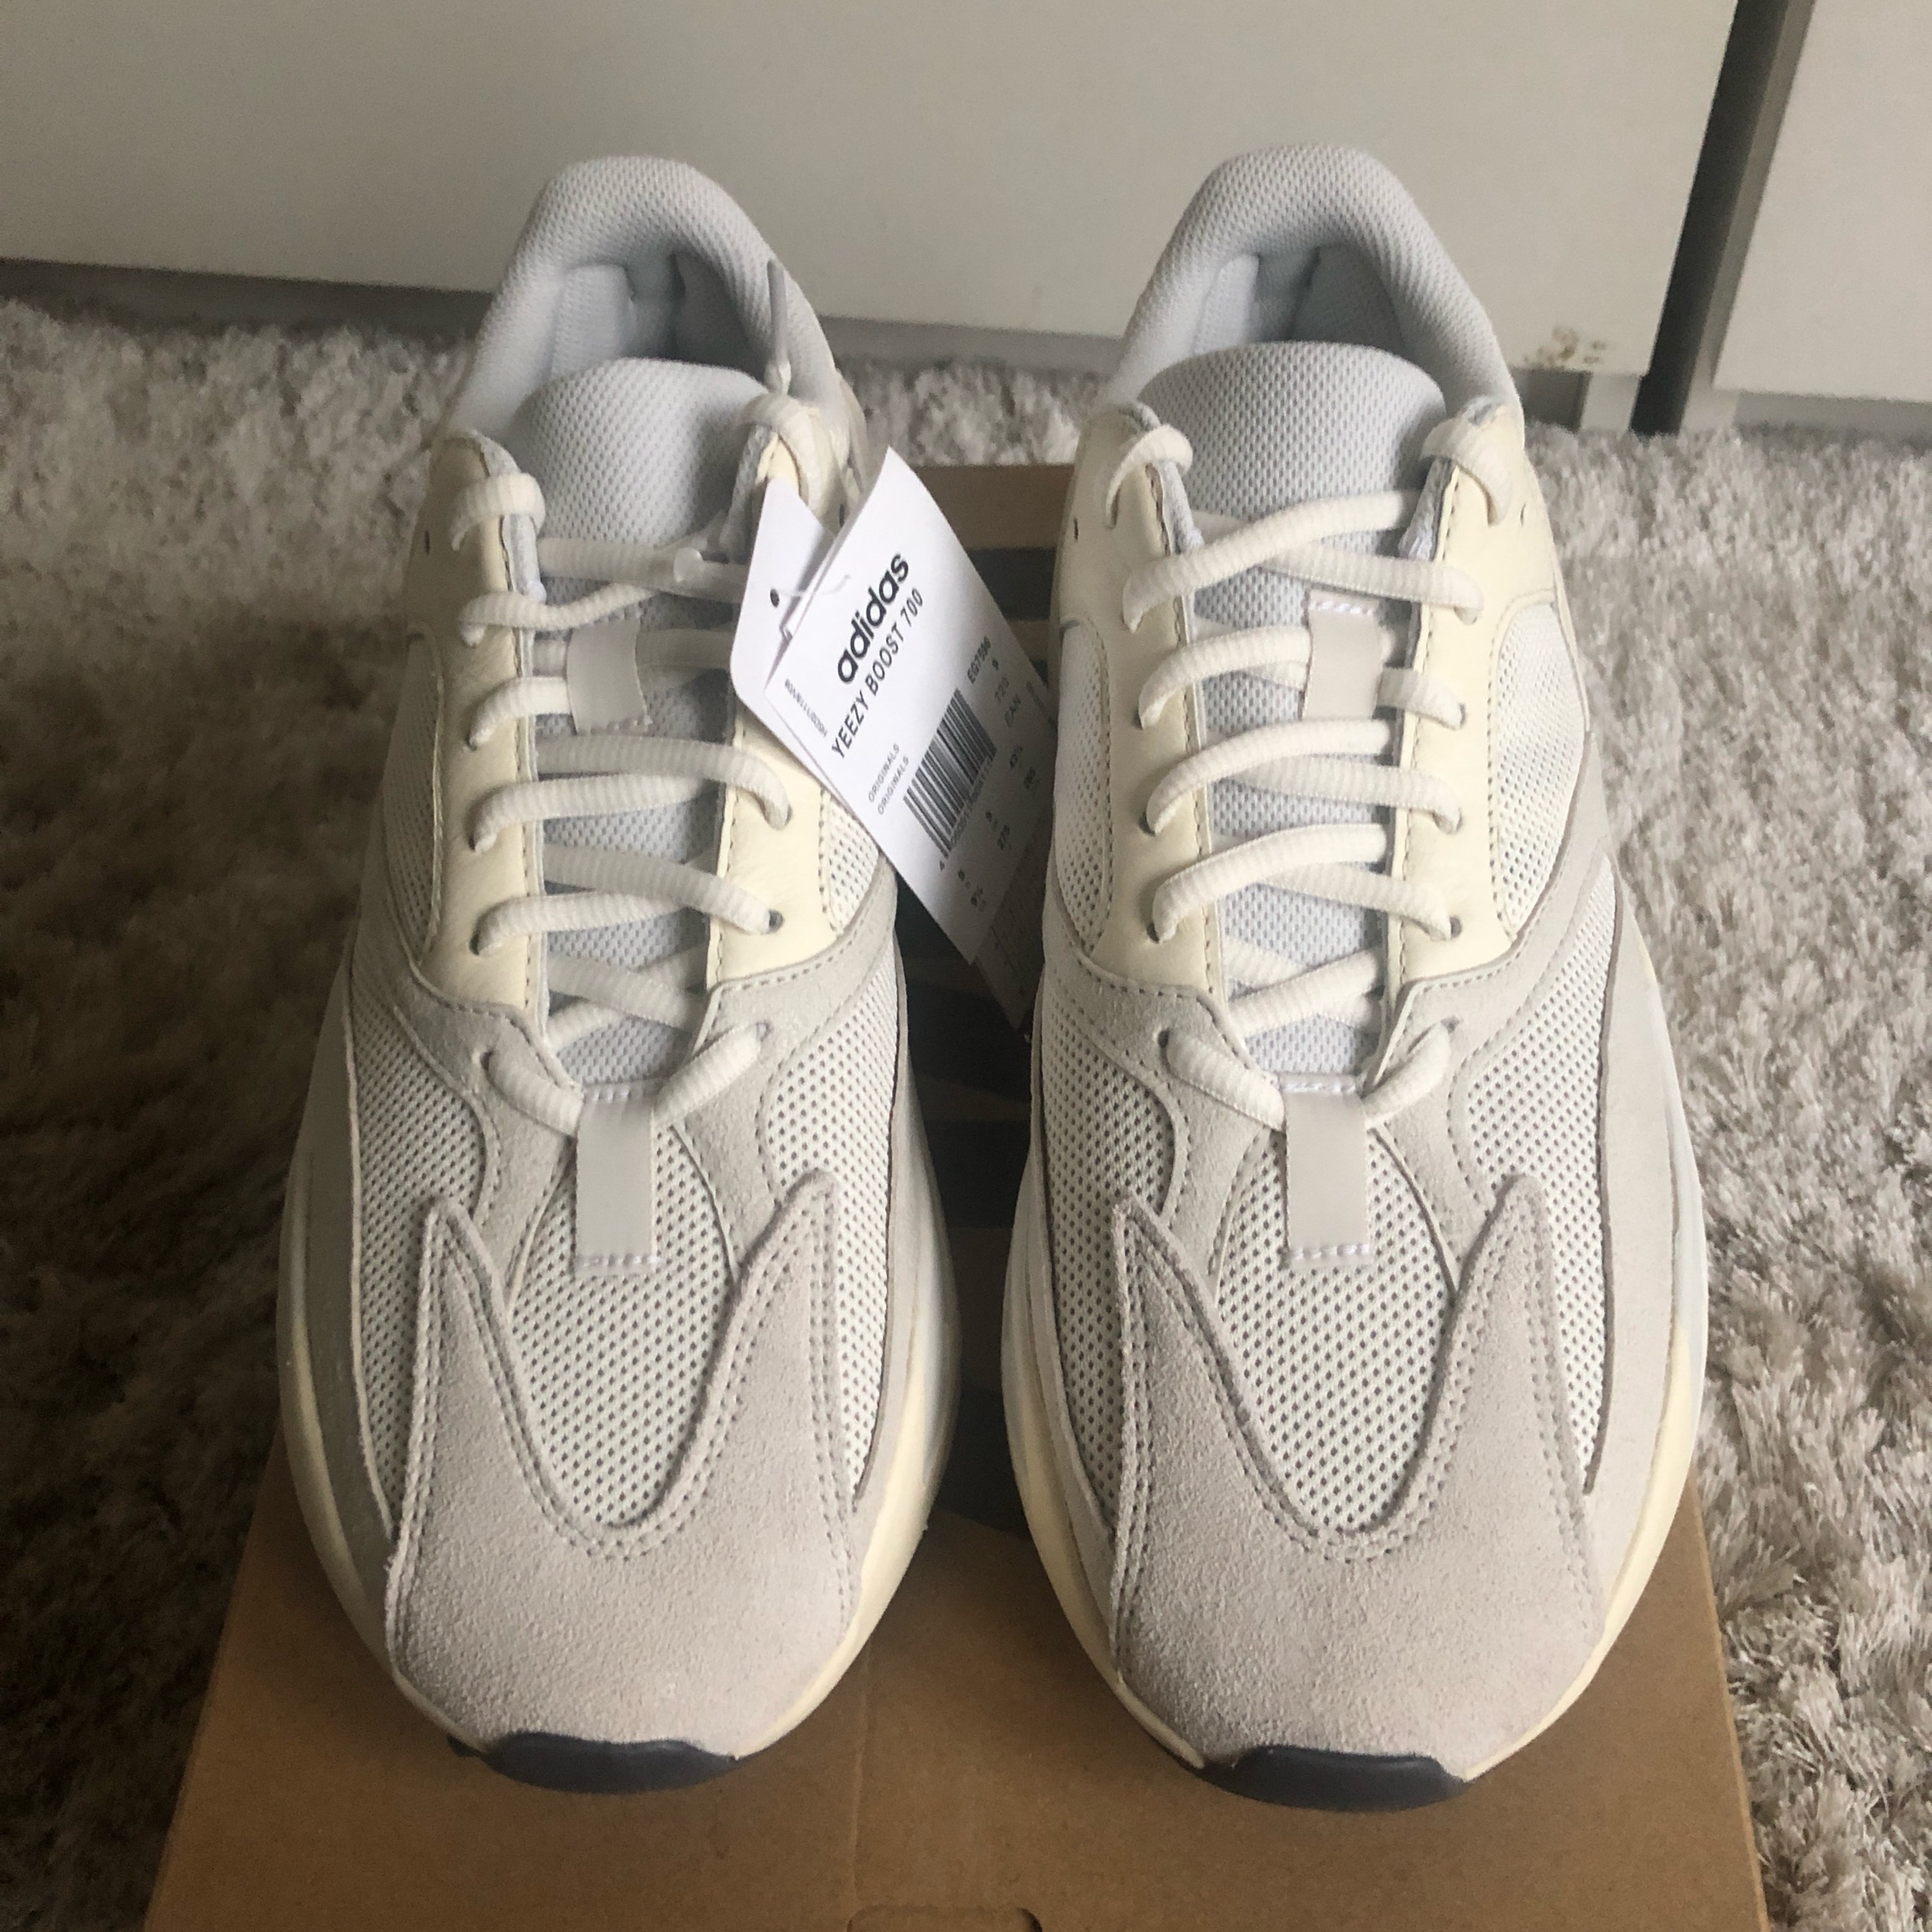 **Steal**Yeezy 700 Analog